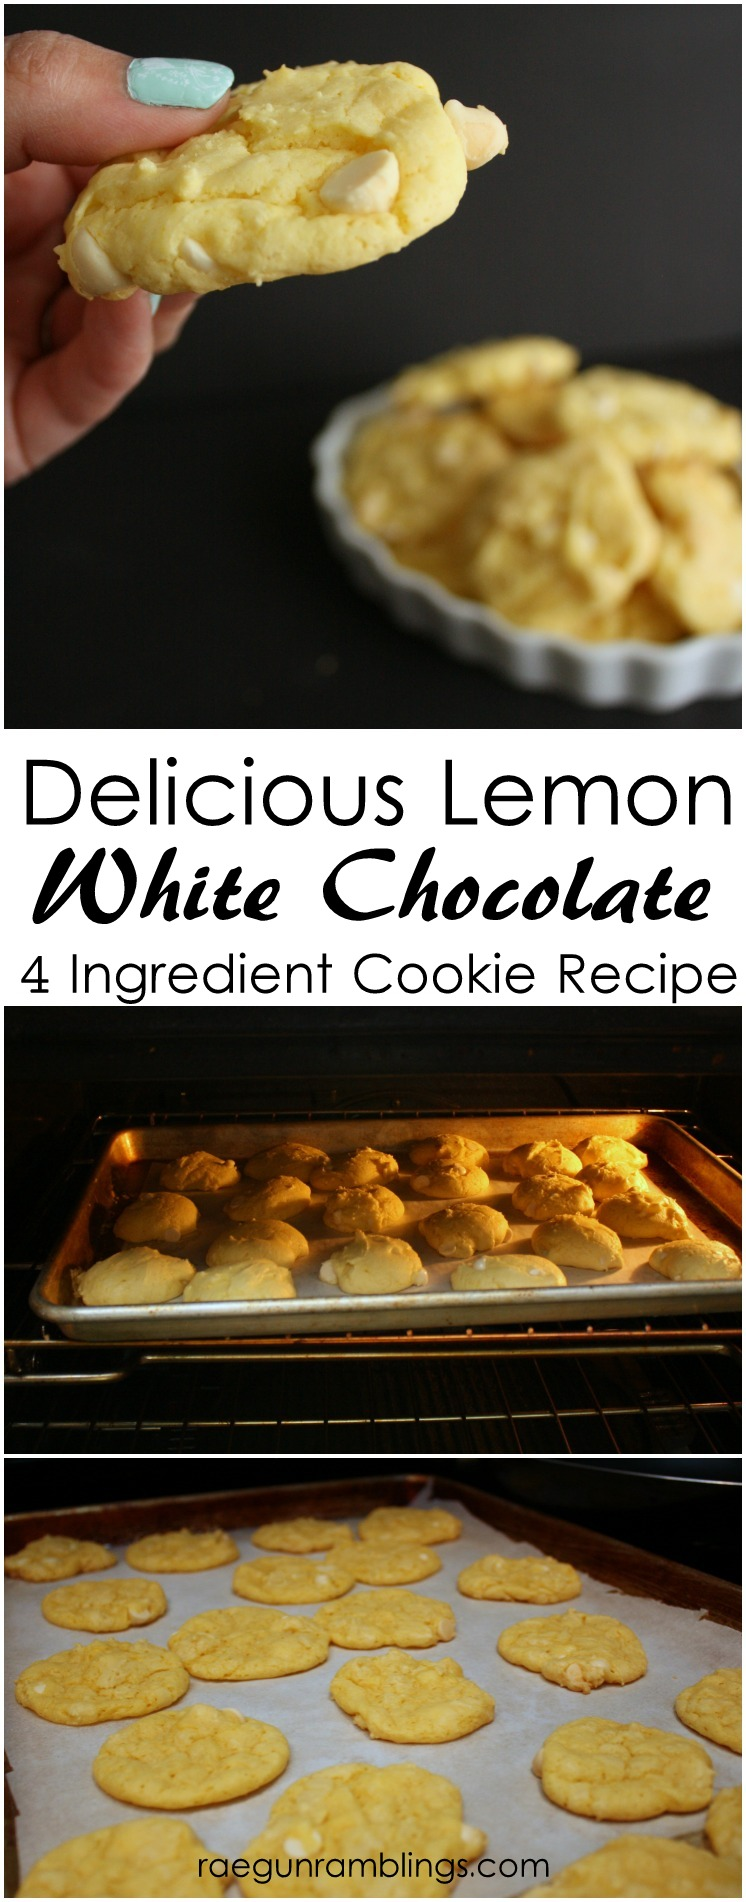 New favorite cookies to take to people. SO easy and reliable. Yummy easy lemon white chocolate dessert recipe